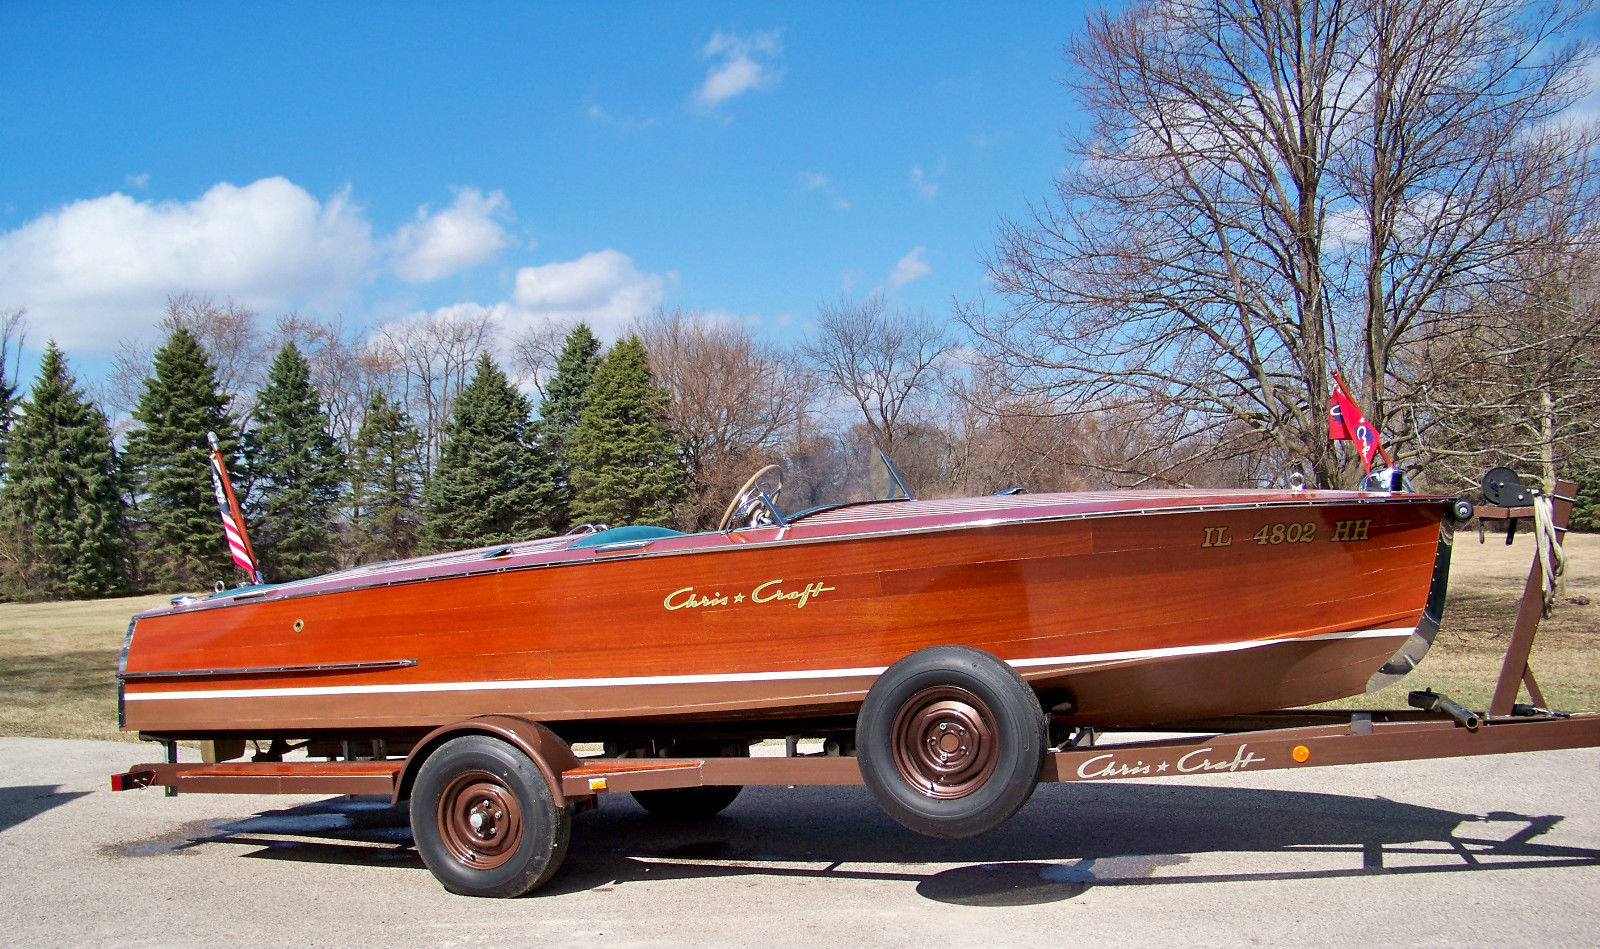 Chris Craft Museum